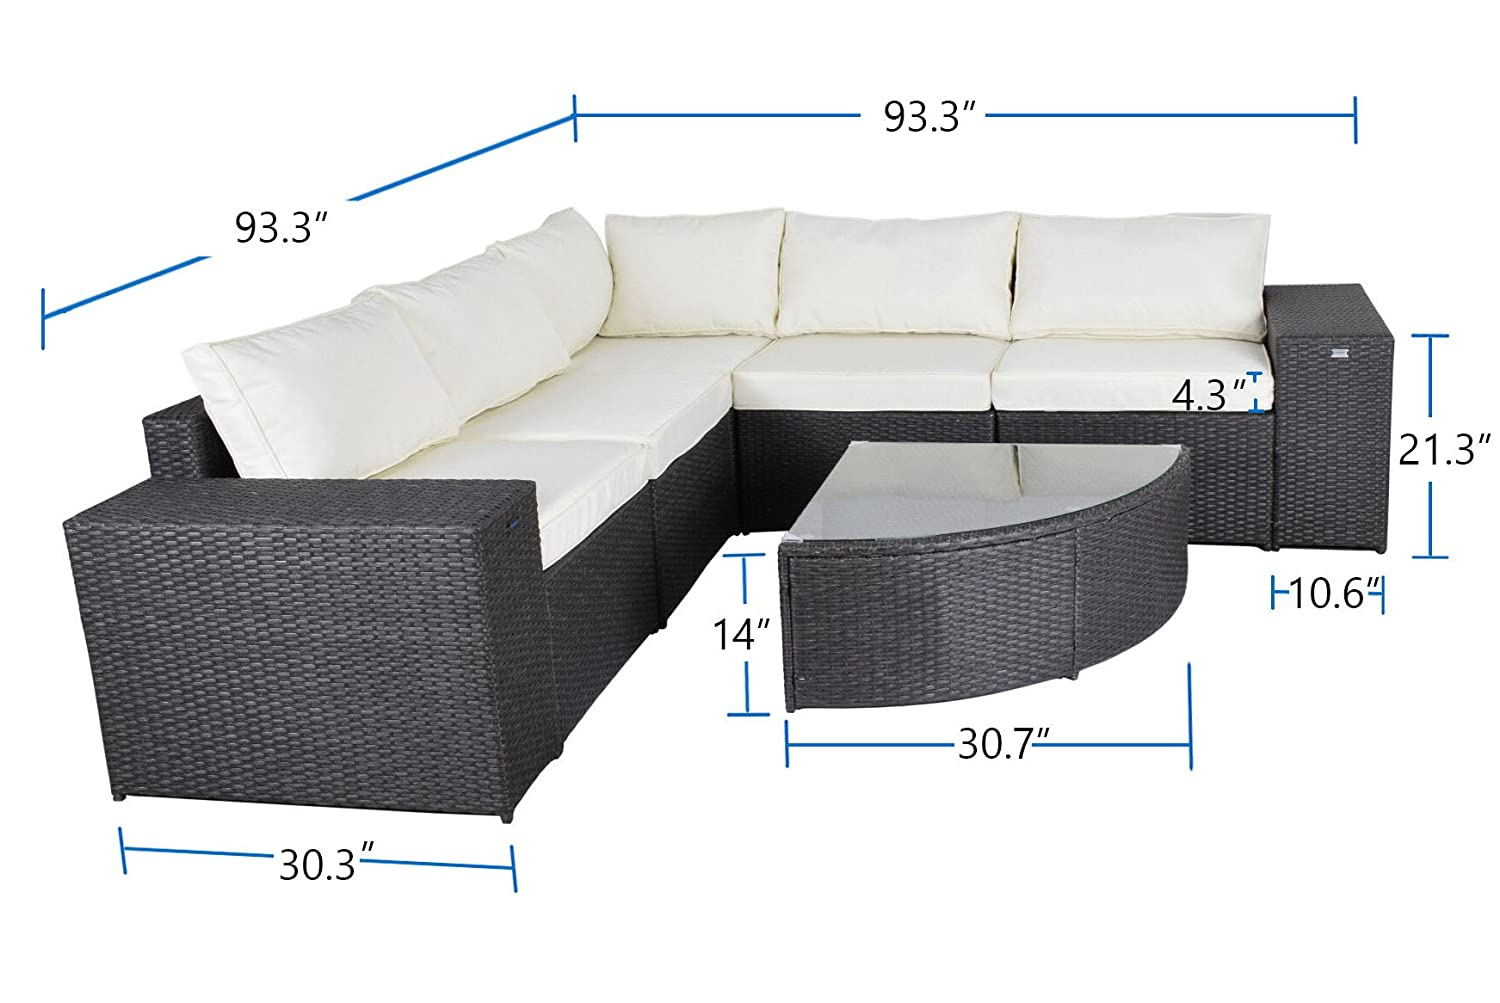 Gotland 6 piece set outdoor patio furniture sectional sofa glass top wedge tableall weather wicker with washable cushions patio backyard pooldeck